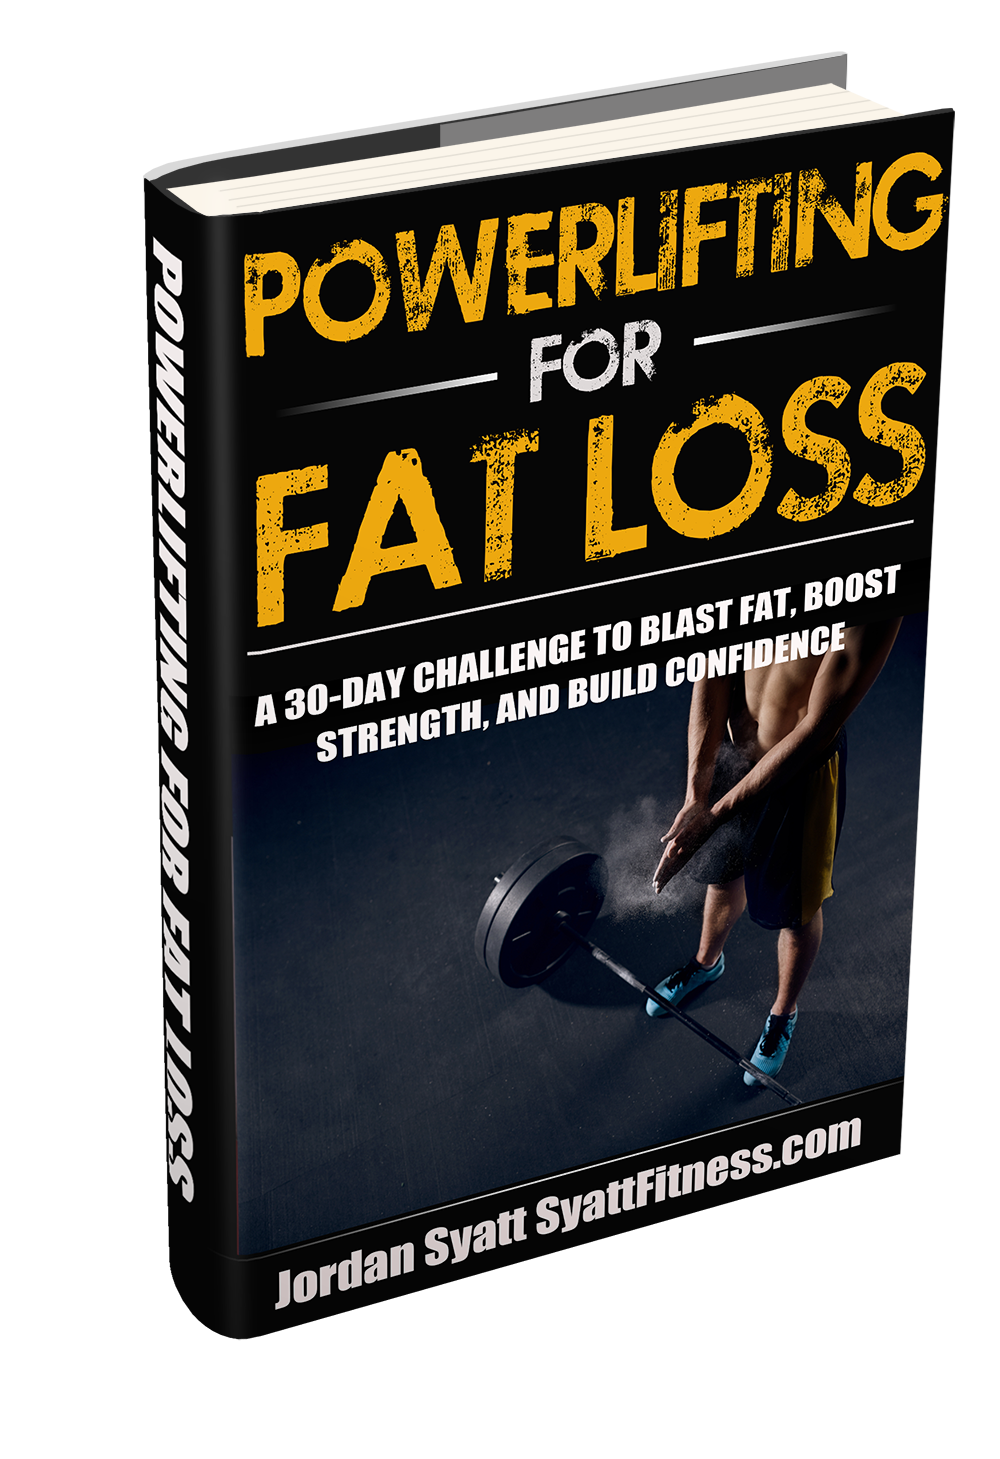 powerlifting for fat loss